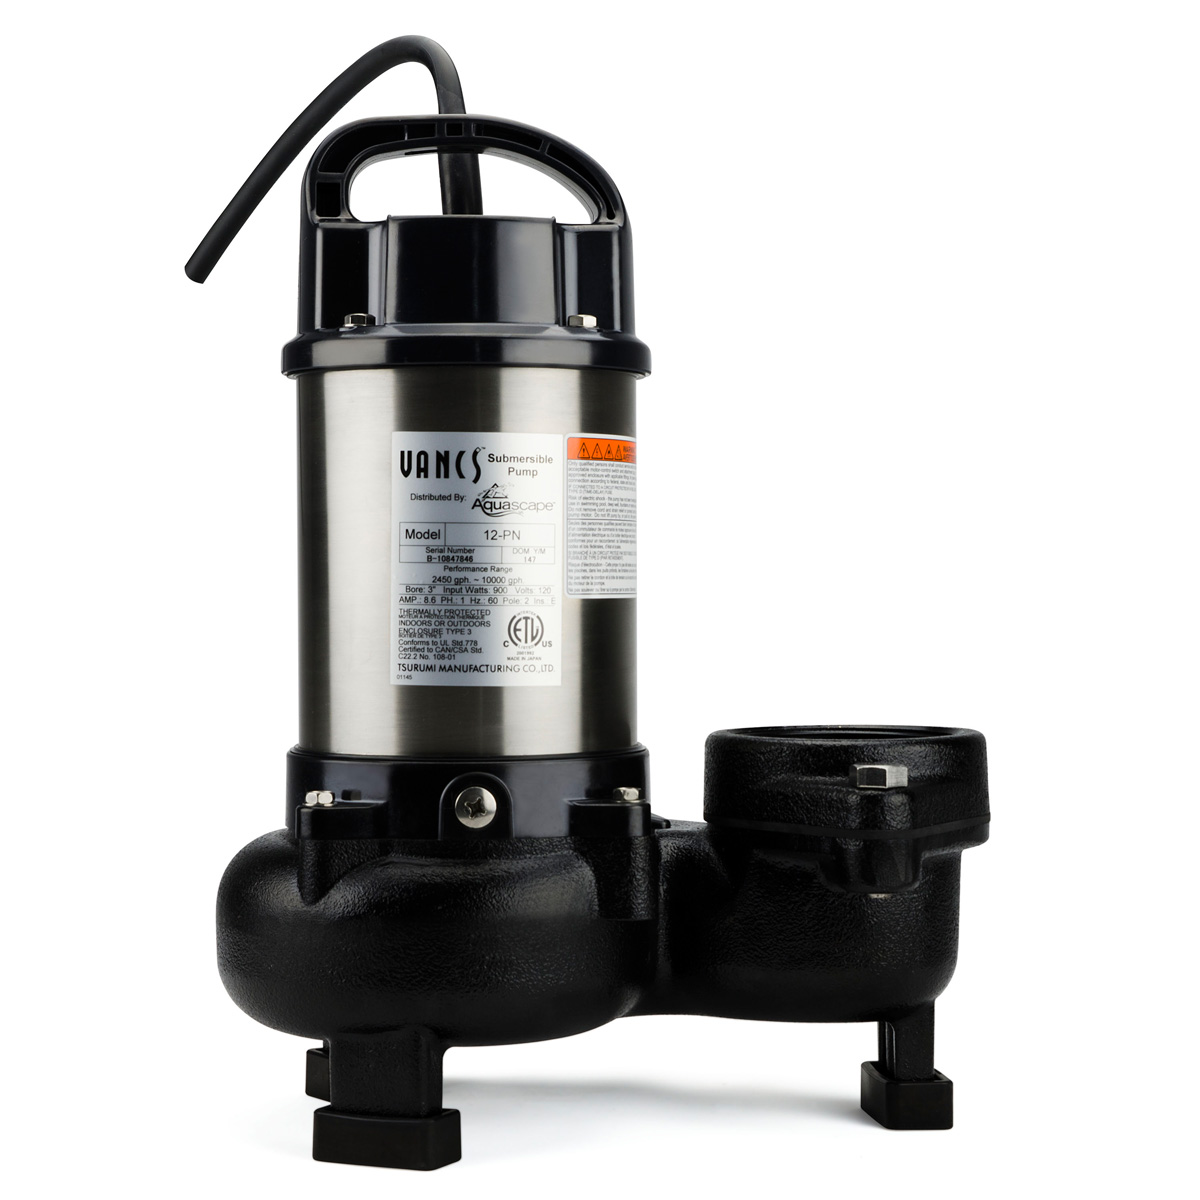 Aquascape Tsurumi 12PN 10,000 GPH Pump for Pond Waterfall ...